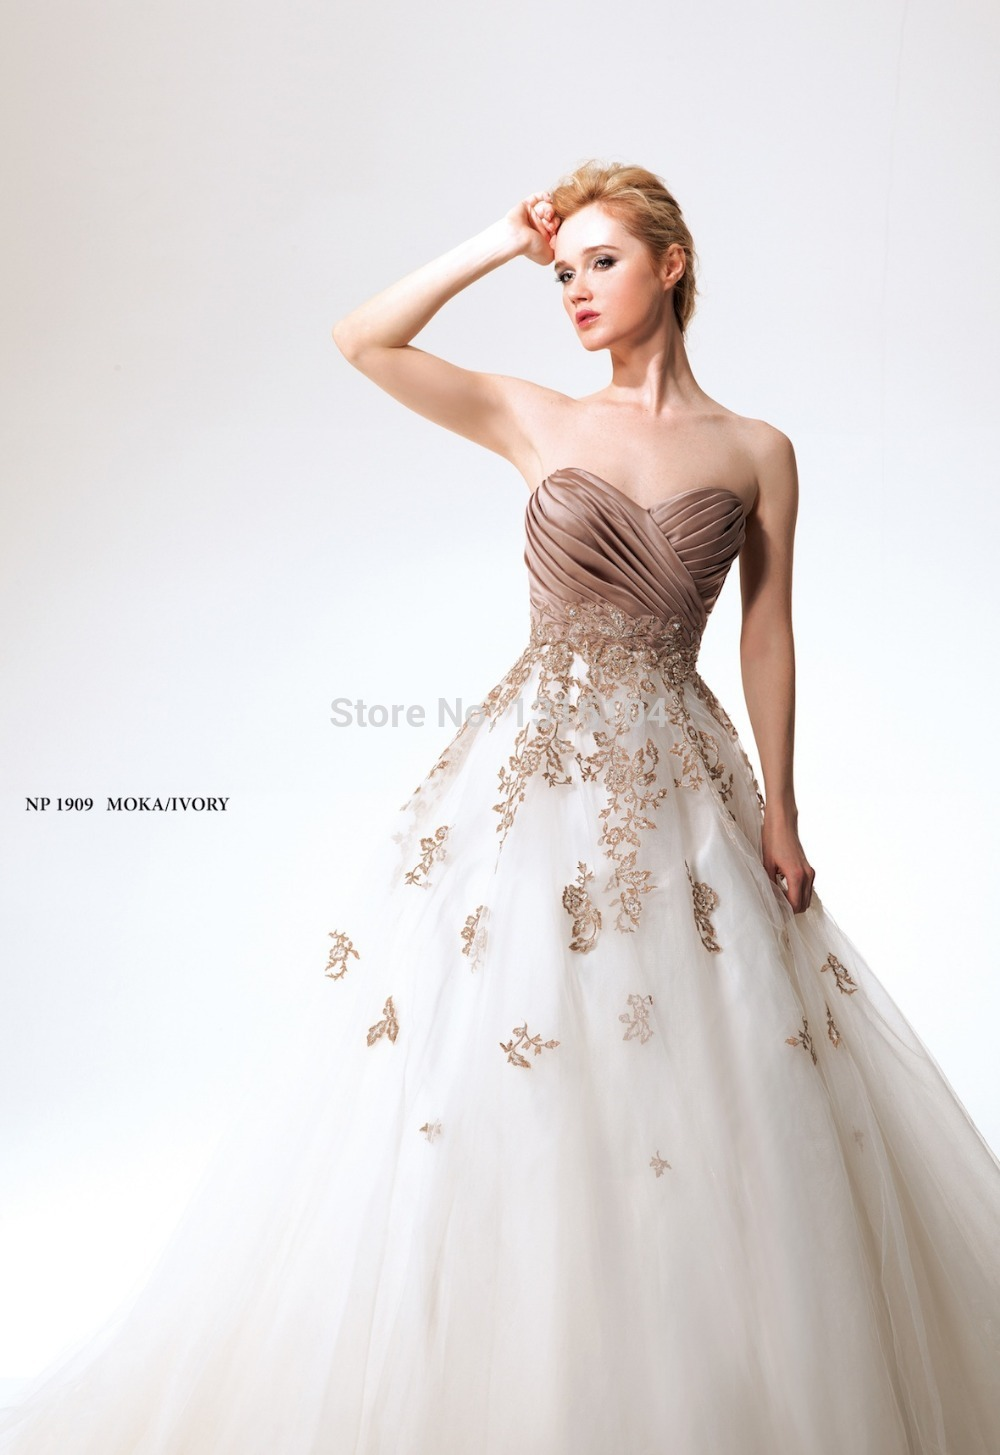 2016 White And Brown Vintage Colorful Wedding Dresses Two Tone ...